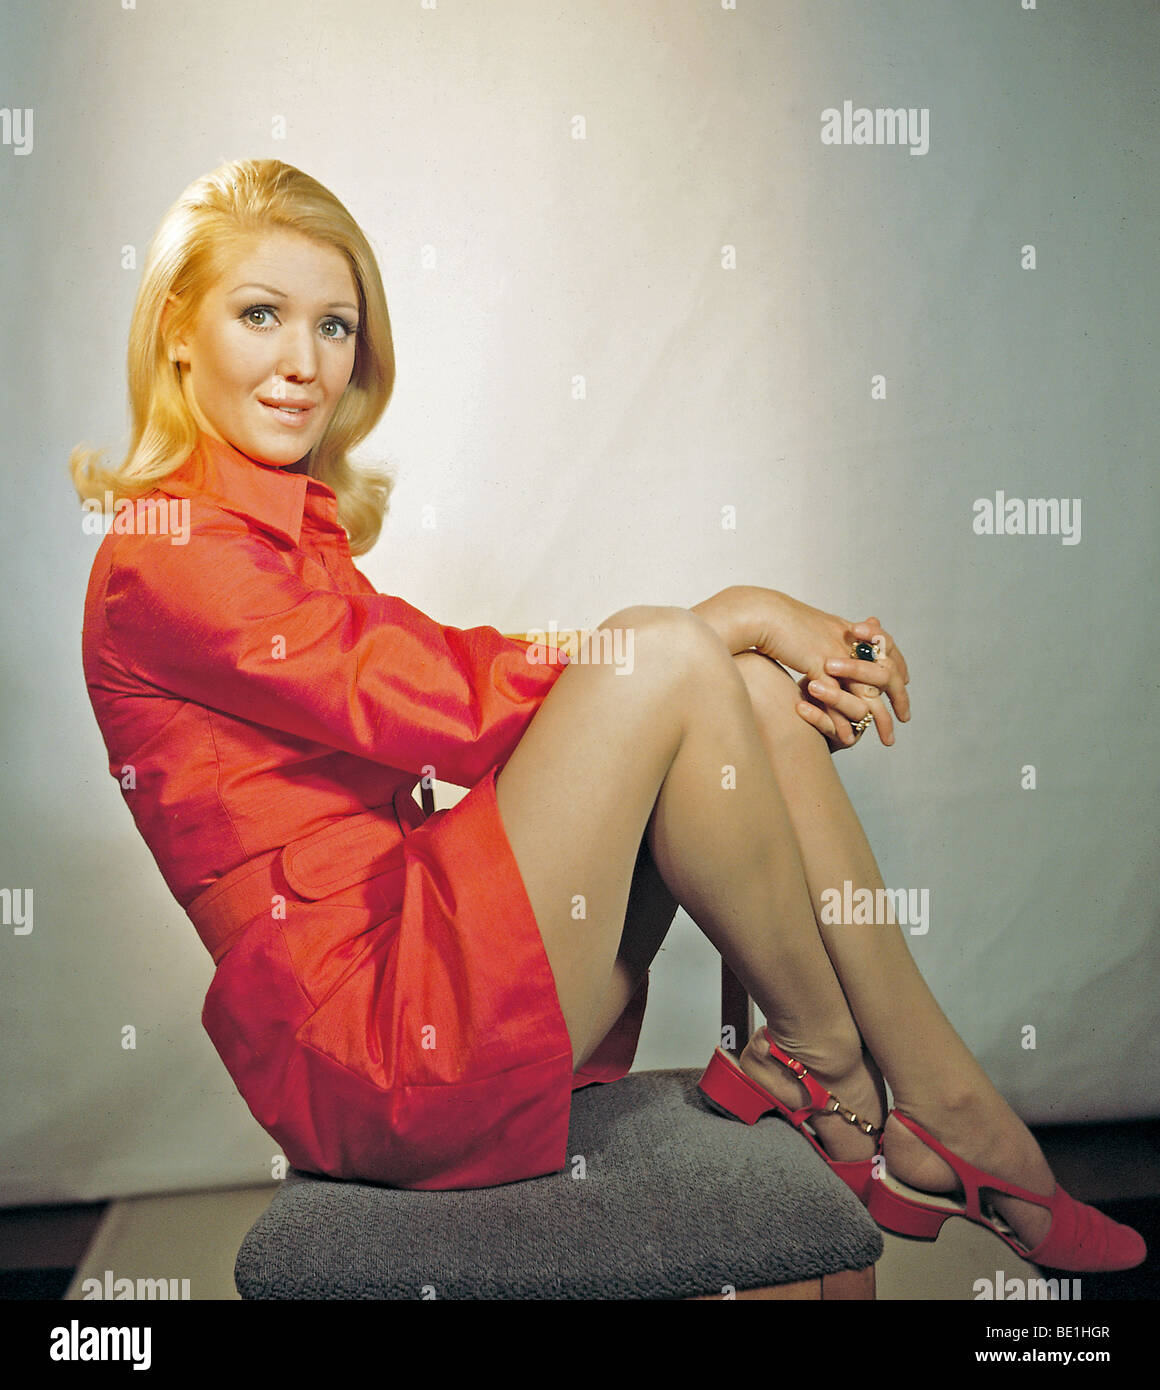 annette andre - photo #19